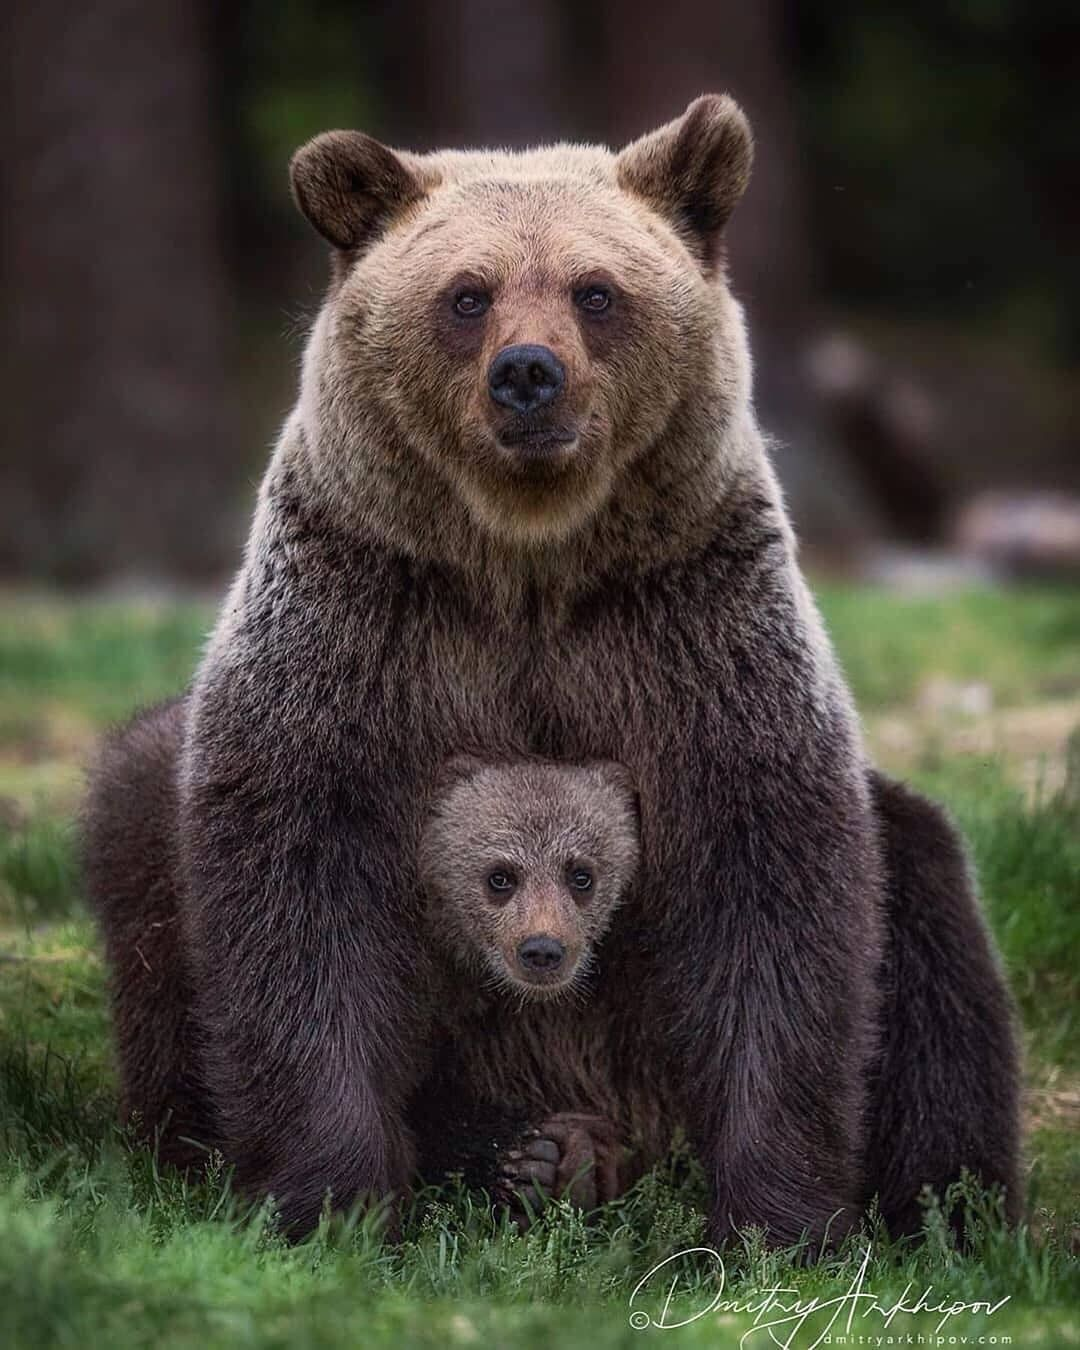 Grizzly bear with its little baby at SW! If you have time